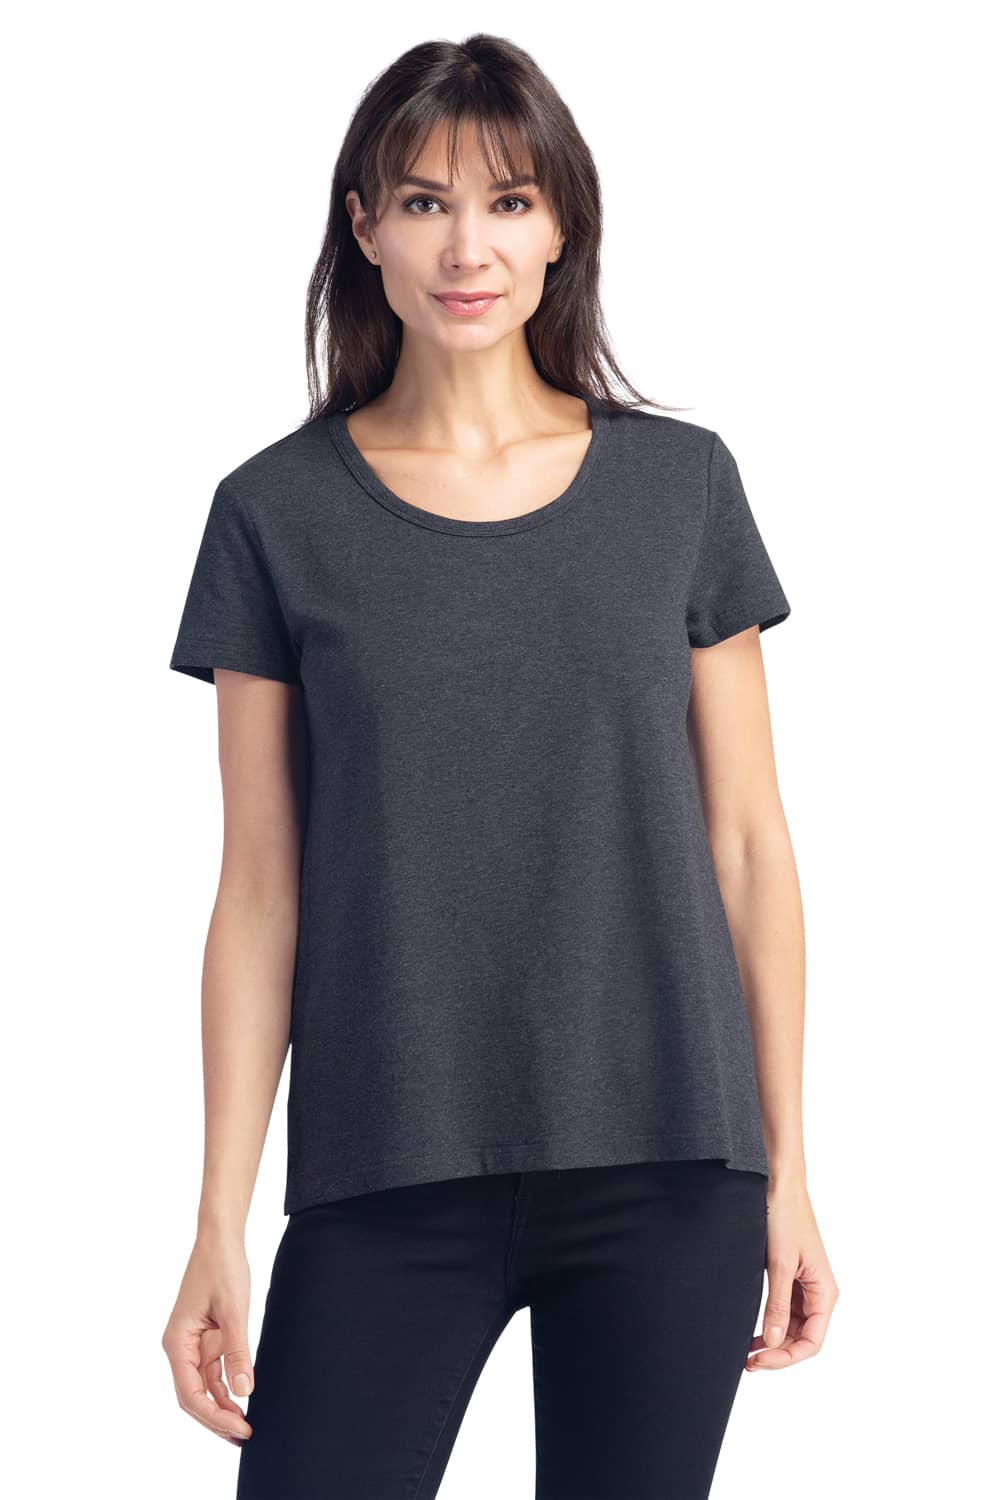 Fishers Finery Women's Relaxed EcoFabric™ Scoop Neck Tee